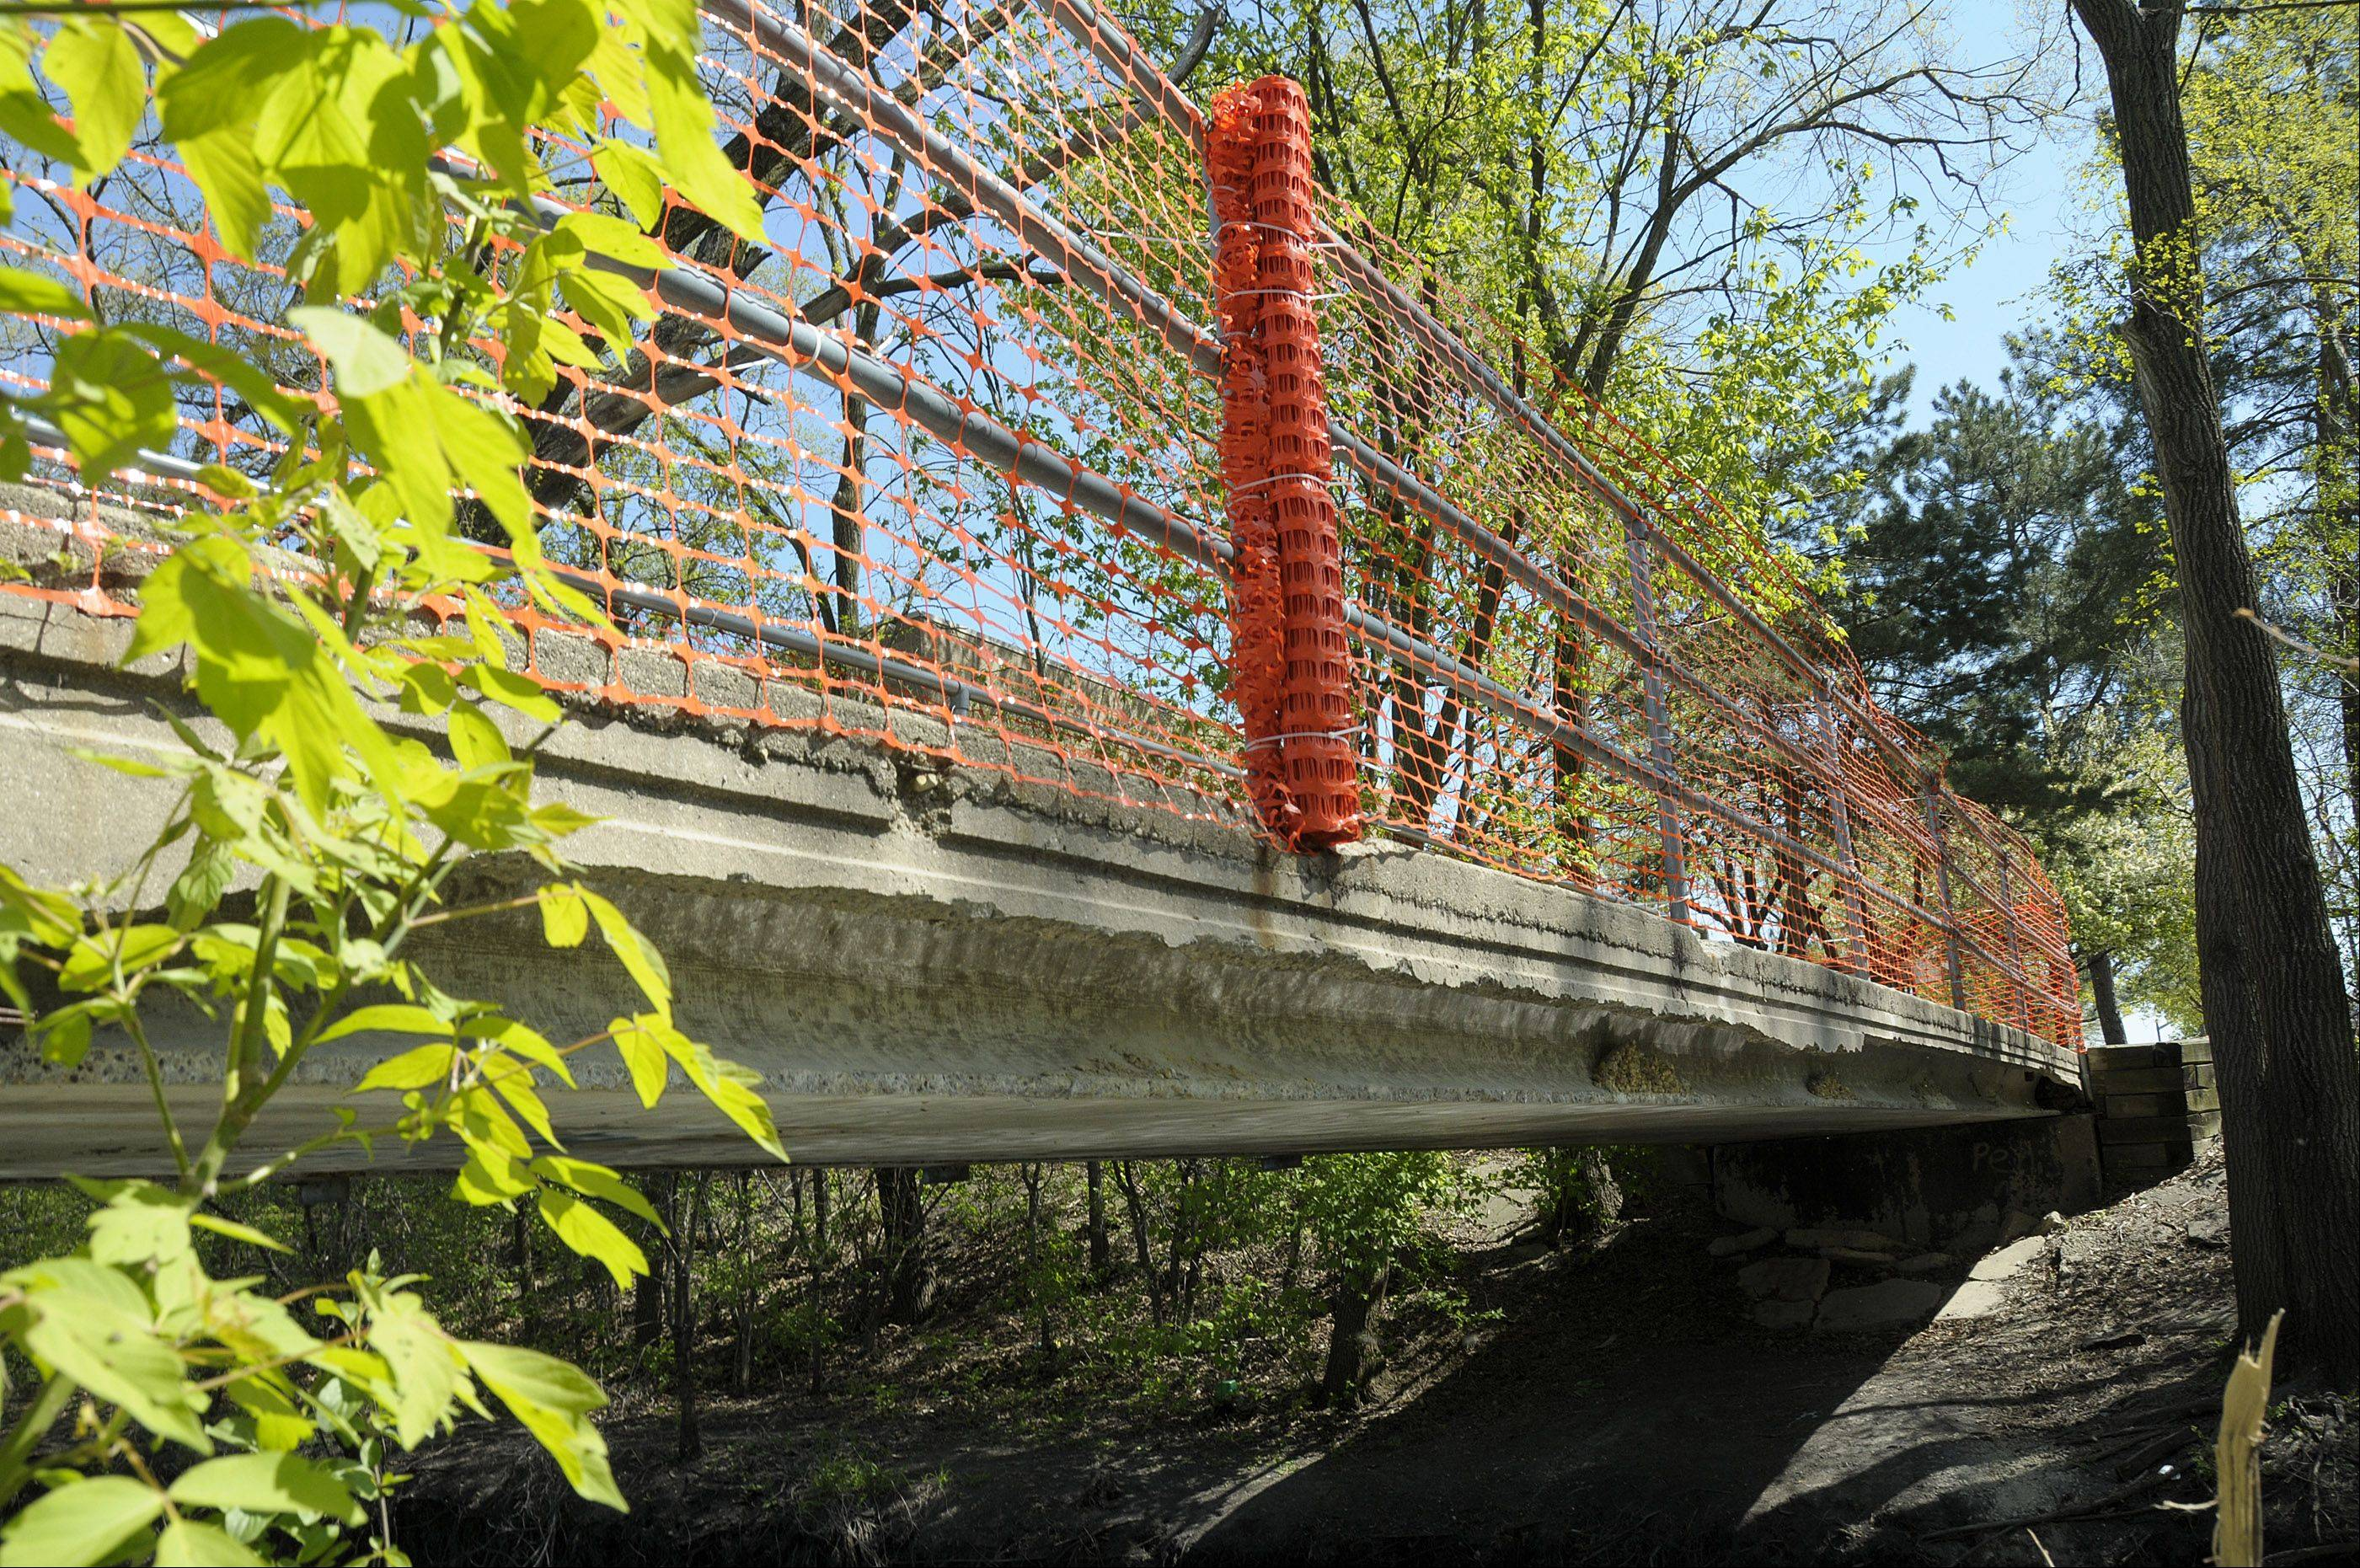 Carol Stream closes pedestrian bridge